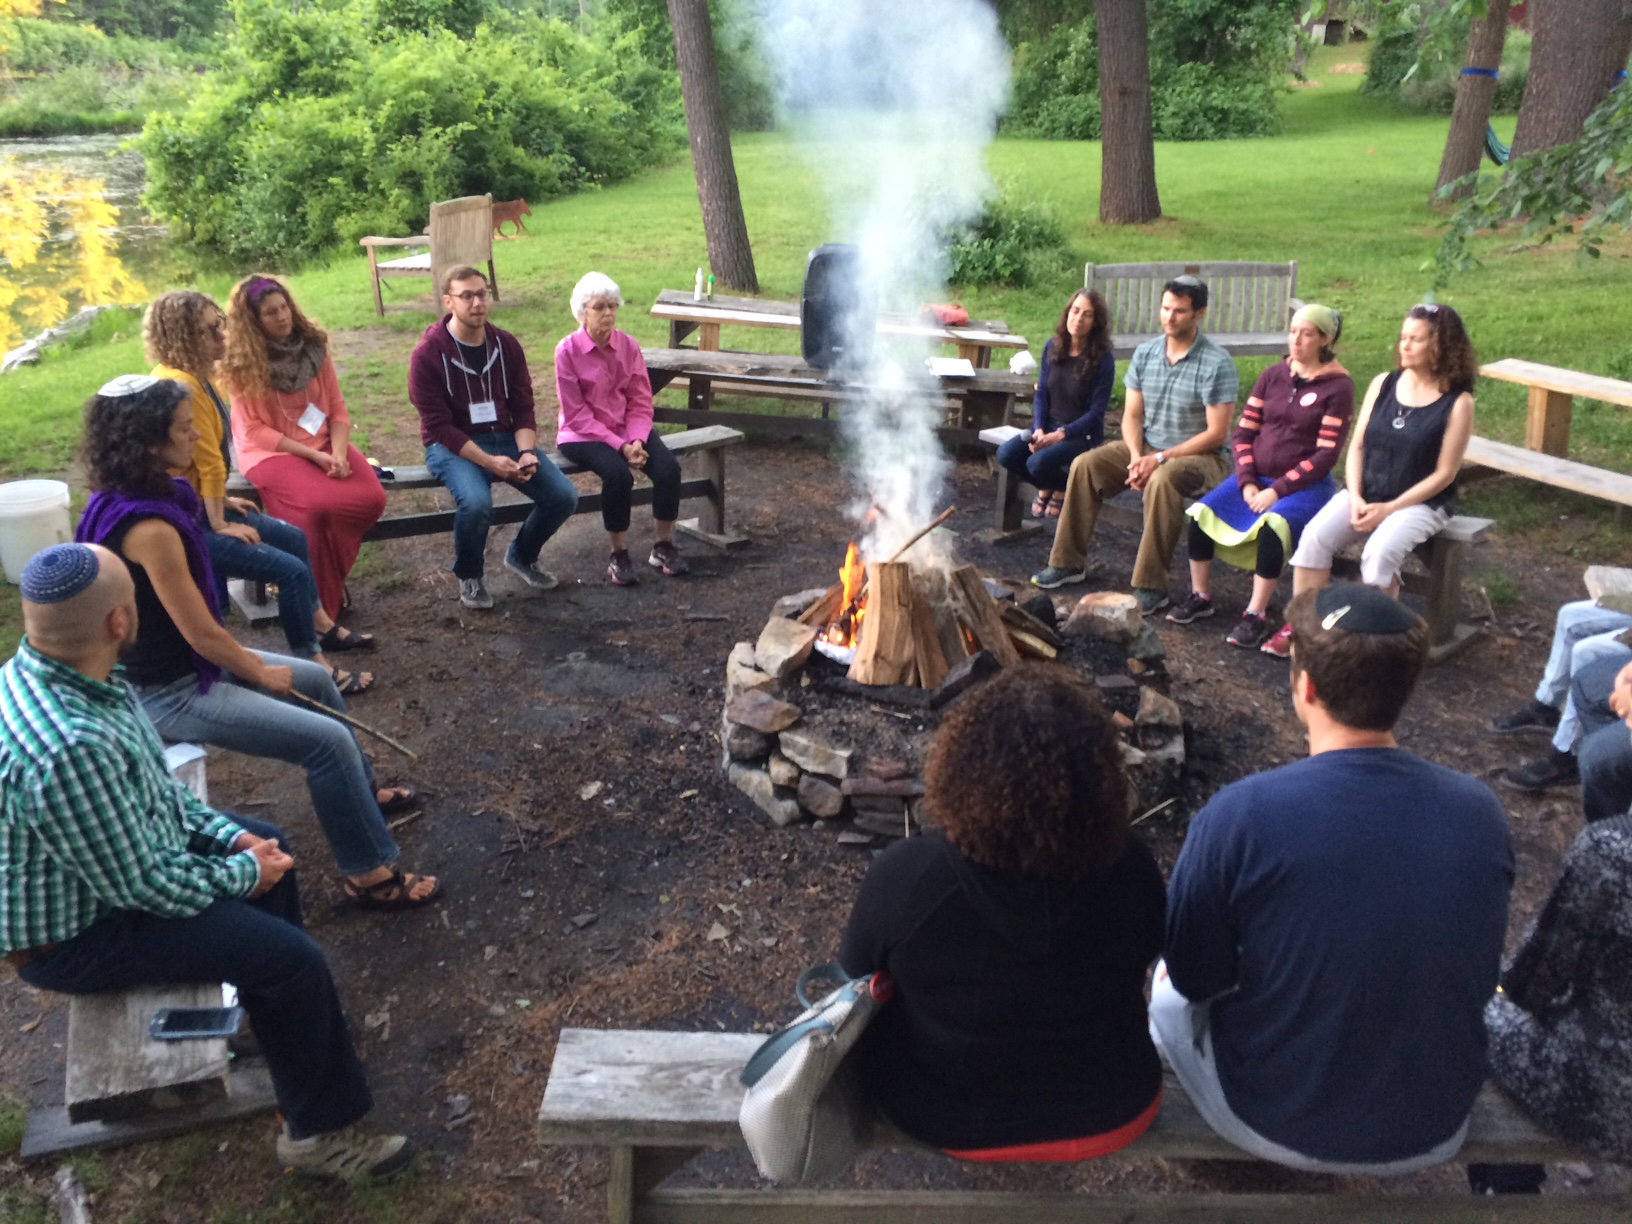 CLI fellows sitting on benches around a fire